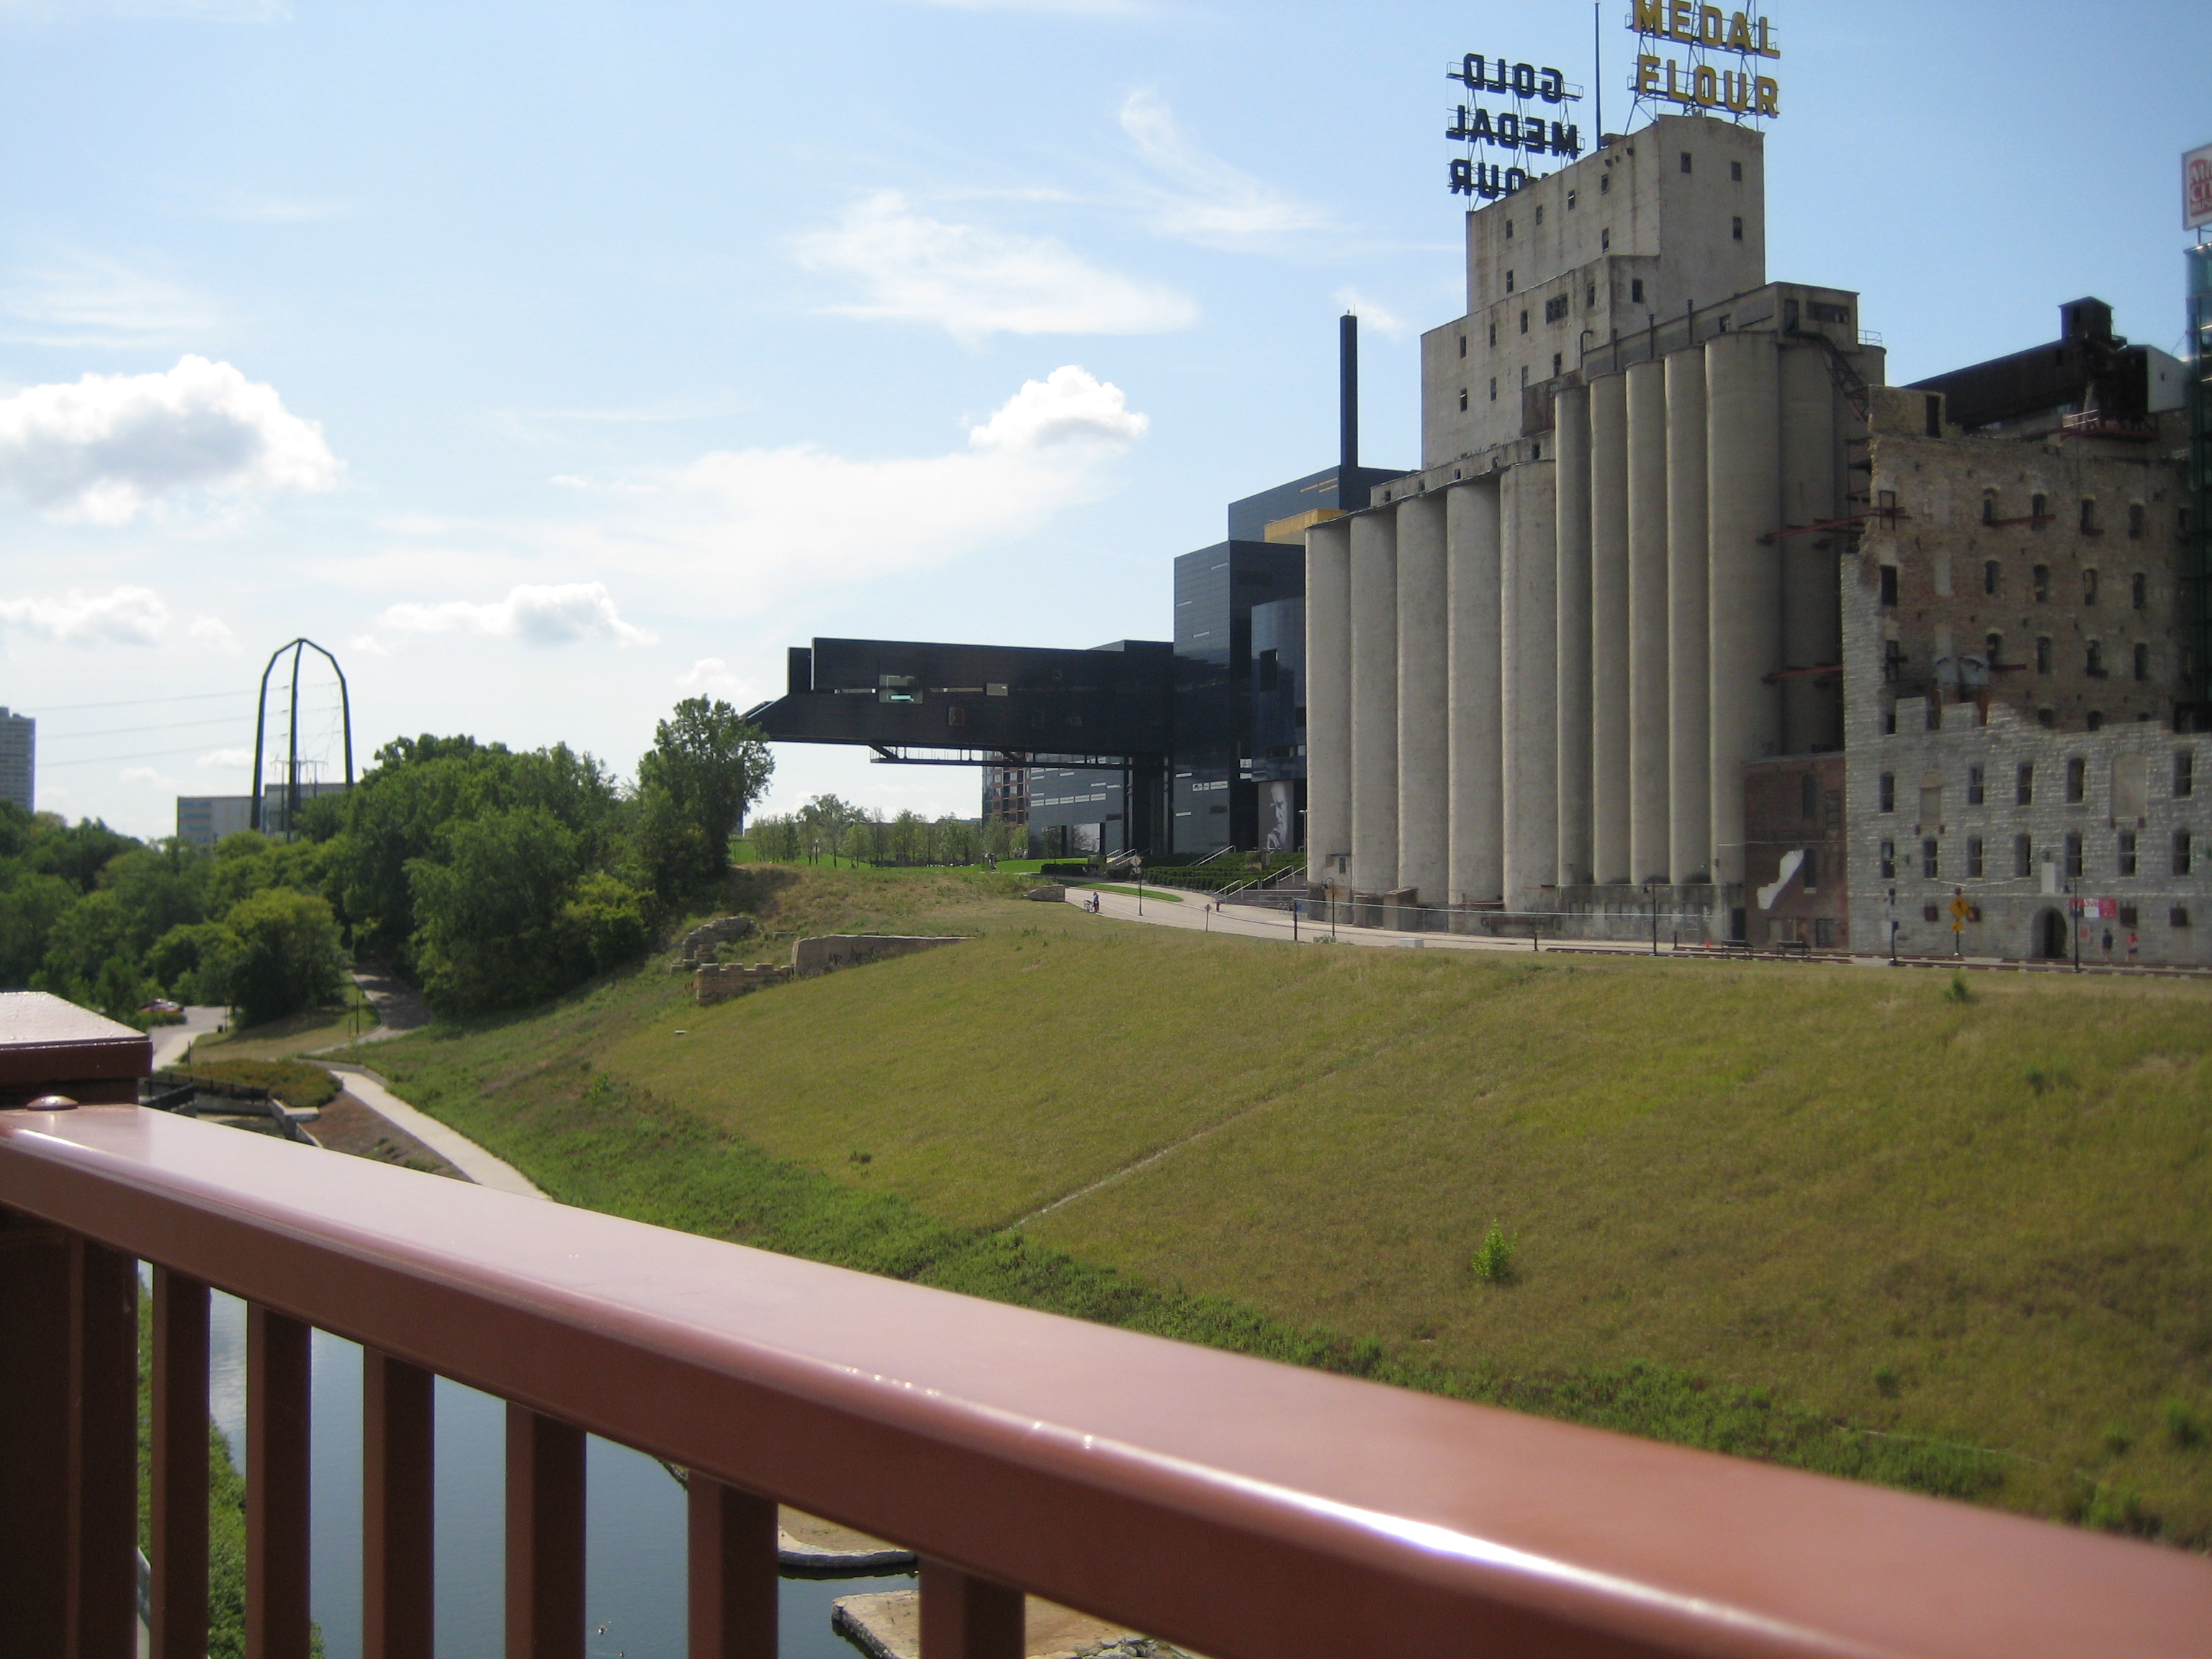 Would I have walked to the very end of the Guthrie bridge if I knew what it looked like from the river?  It was my Graduation Day in May of 2008....I had already done all the scary stuff...this bridge out over the river?  Piece of Cake!